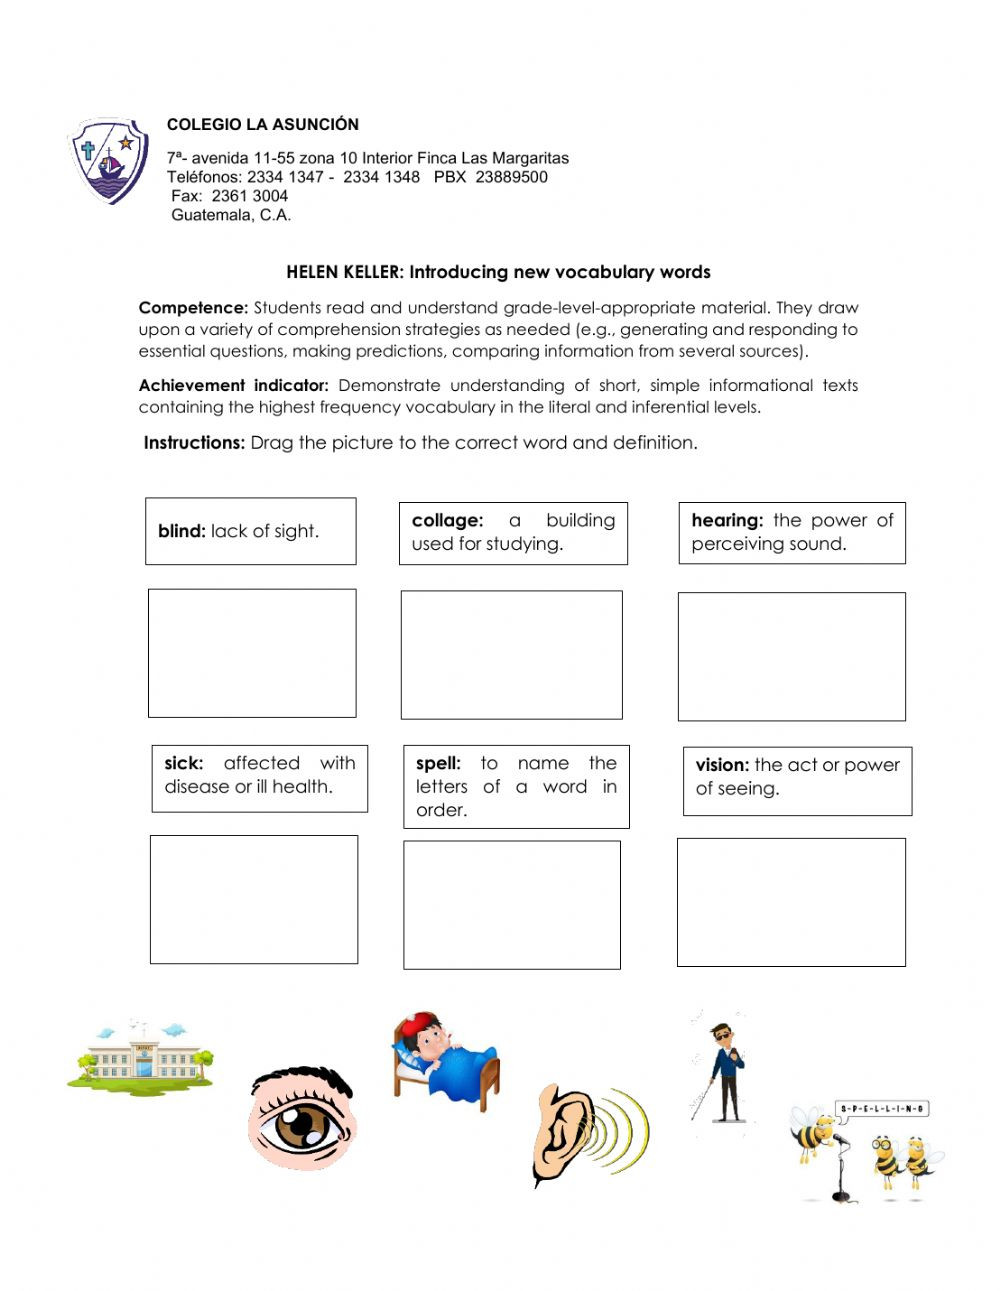 Making Predictions Worksheets 3rd Grade Helen Keller Vocabulary Interactive Worksheet